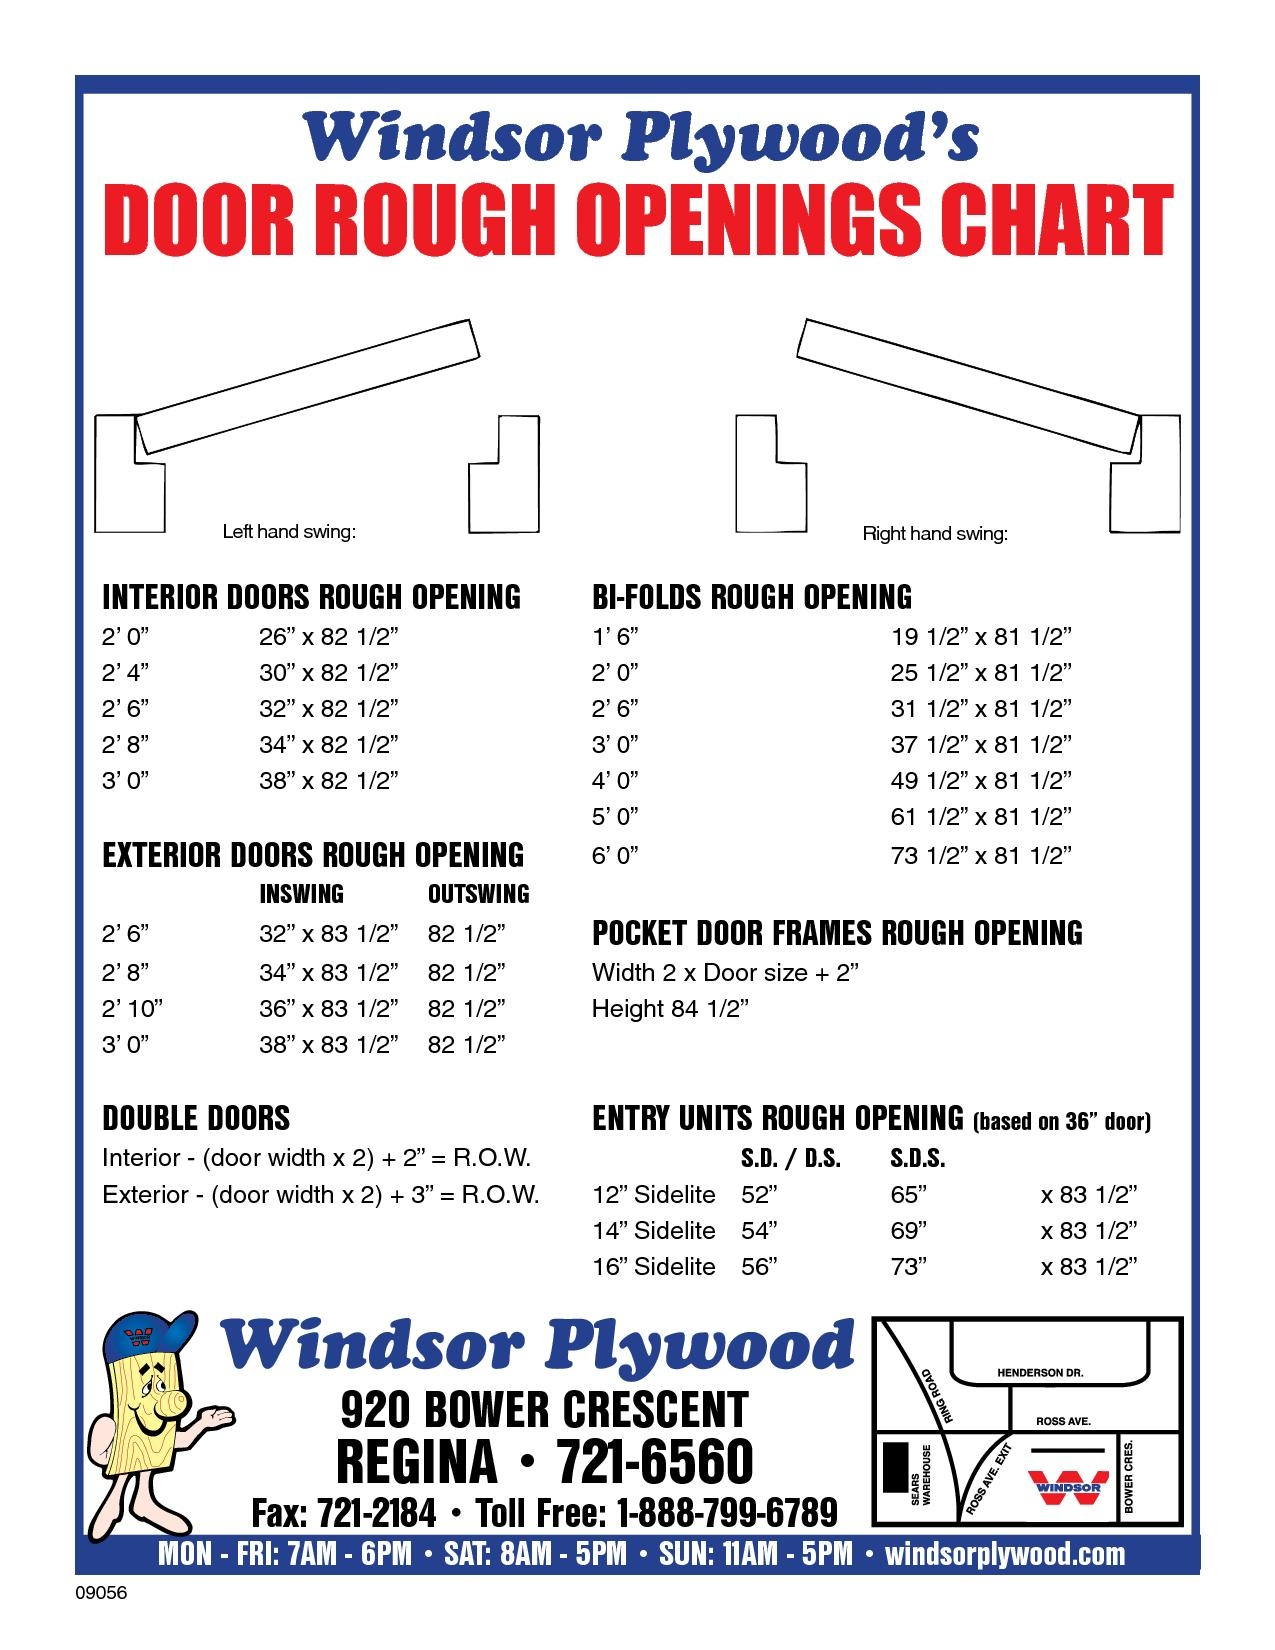 Closet Bifold Door Rough Openingimages of rough opening french door images picture are ideas